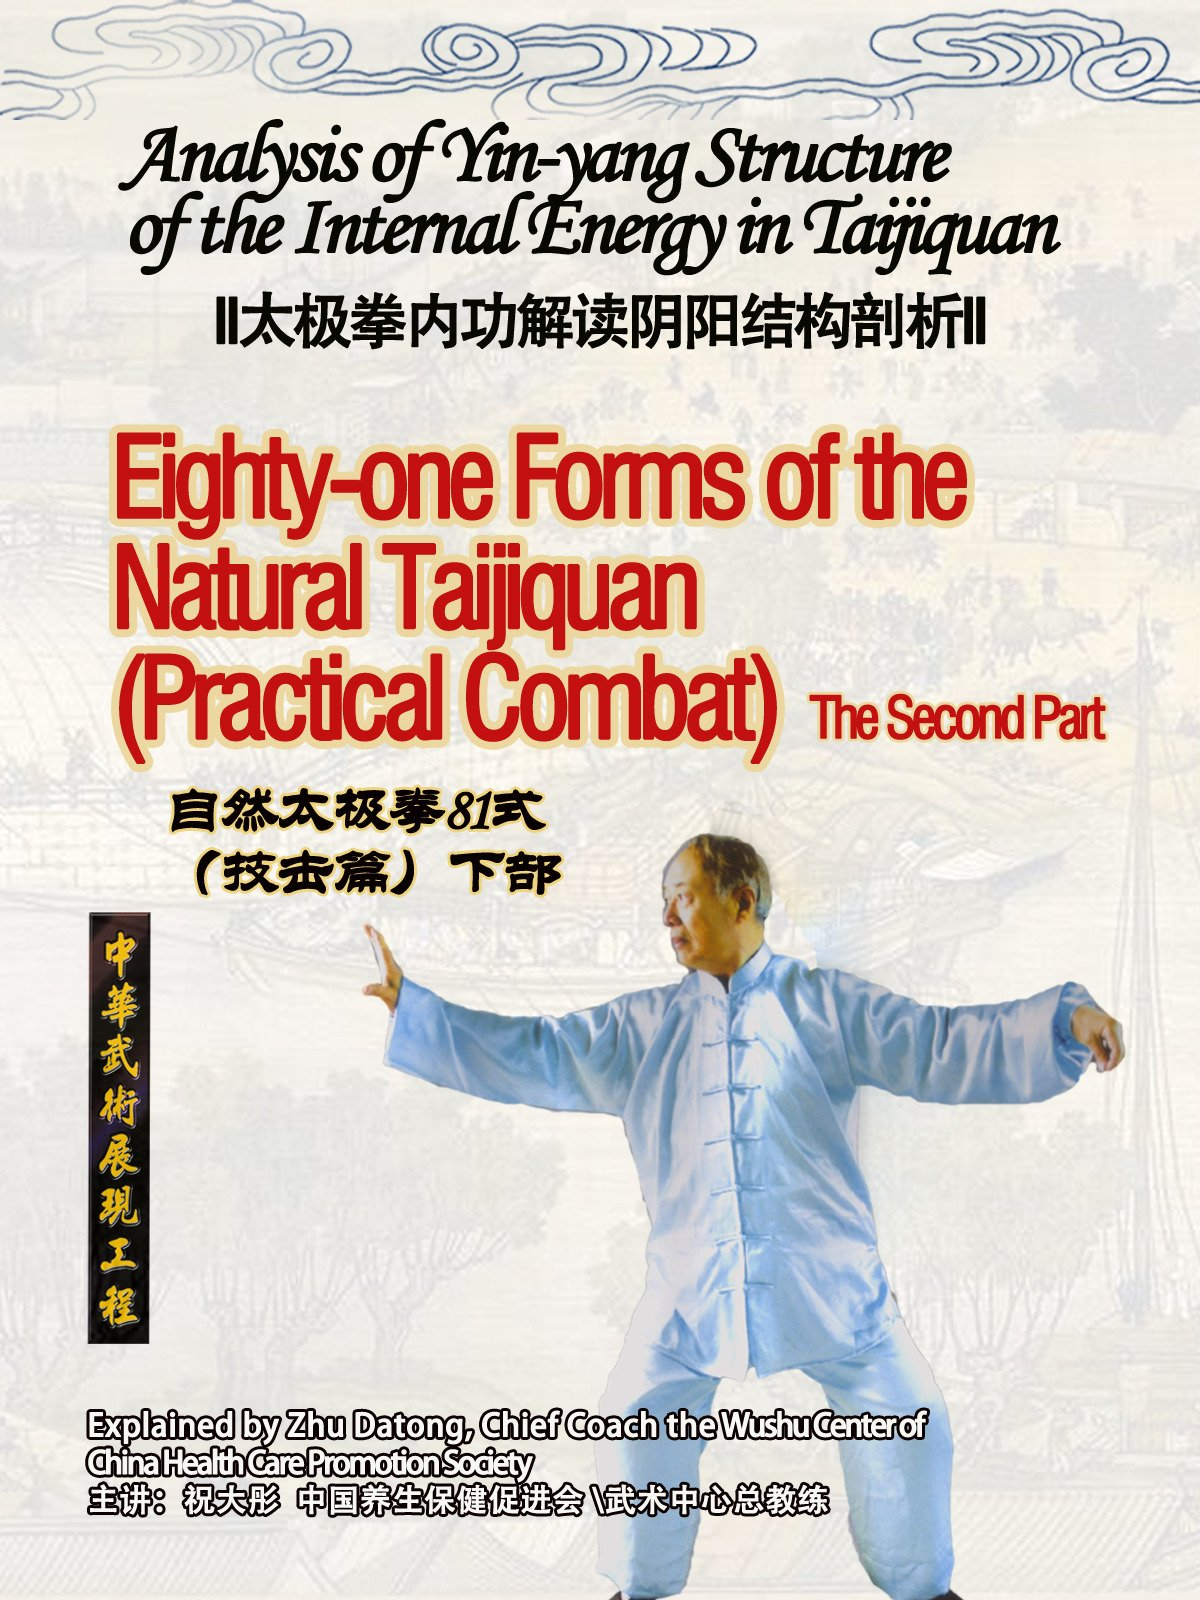 Analysis of Yin-yang Structure of the Internal Energy in Taijiquan-Eighty-one Forms of the Natural Taijiquan (Practical Combat) The Second Part